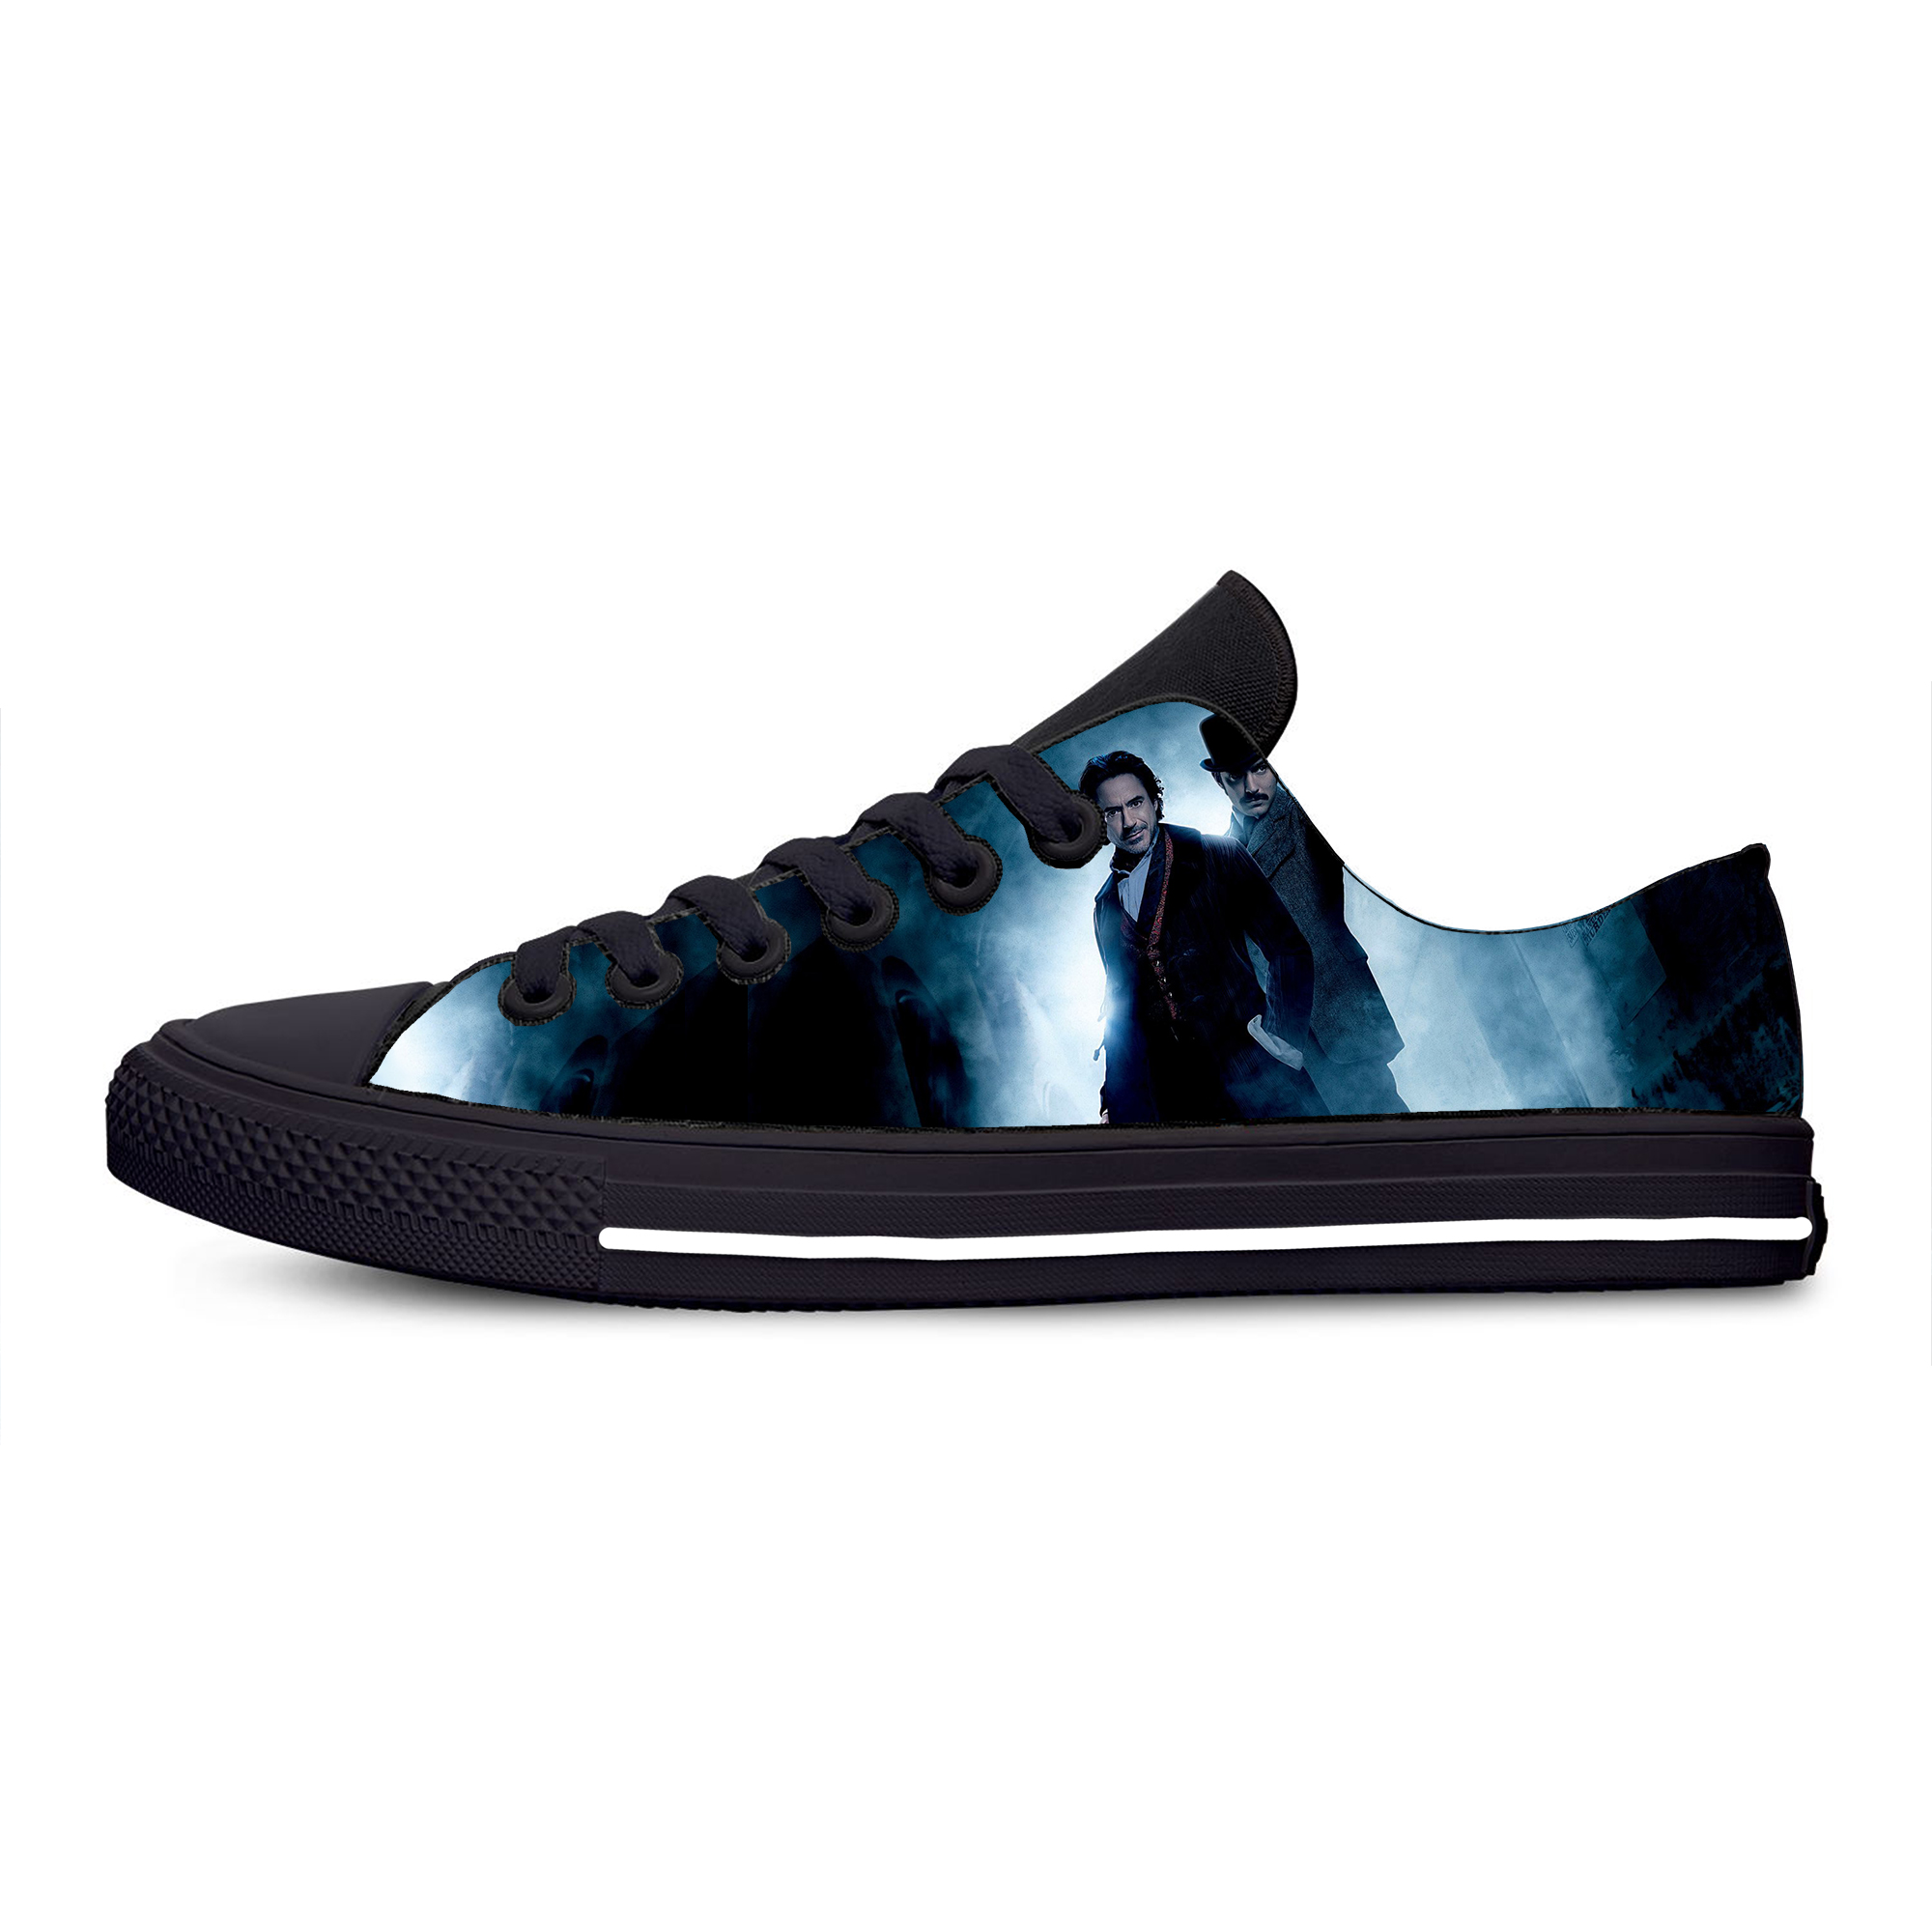 Sherlock Holmes Suspense Movie Hot Cool Fashion Casual Canvas Shoes Breathable Lightweight Sneakers 3D Print For Men Women image